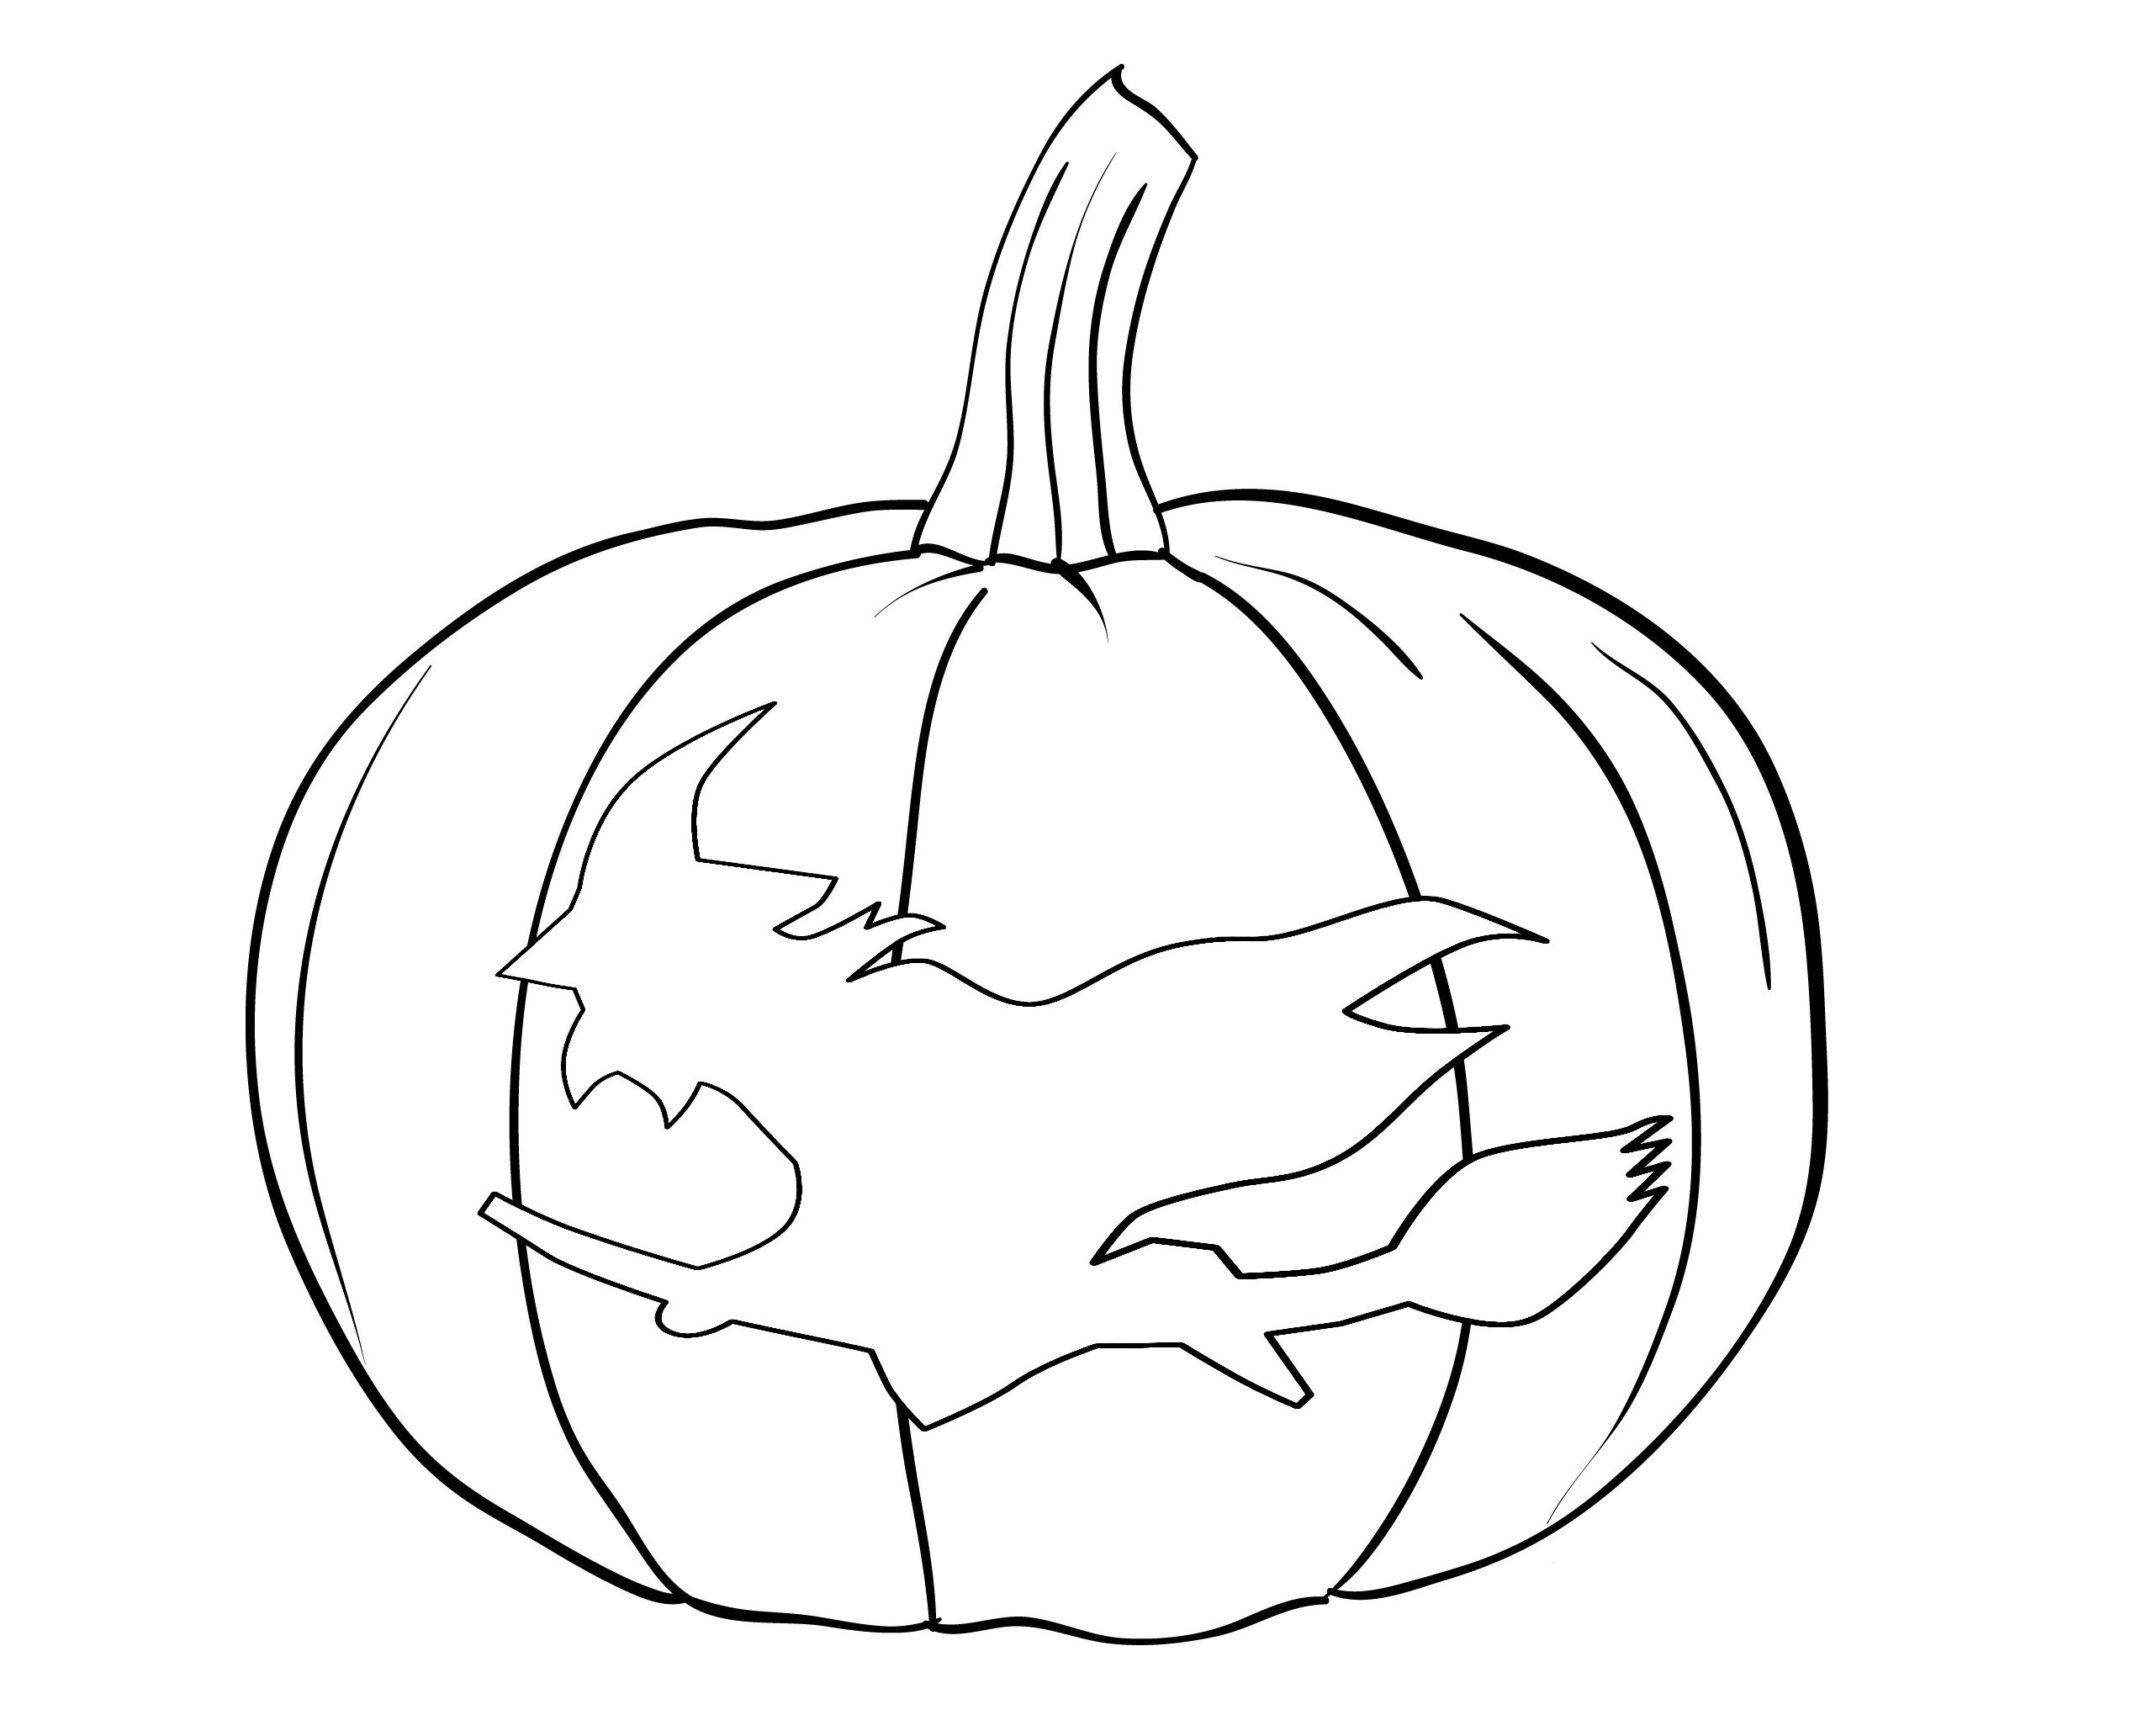 Halloween Pumpkin Coloring Pages Printables Coloring Pages Free Halloween Pumpkin Coloring Pages For Toddlers